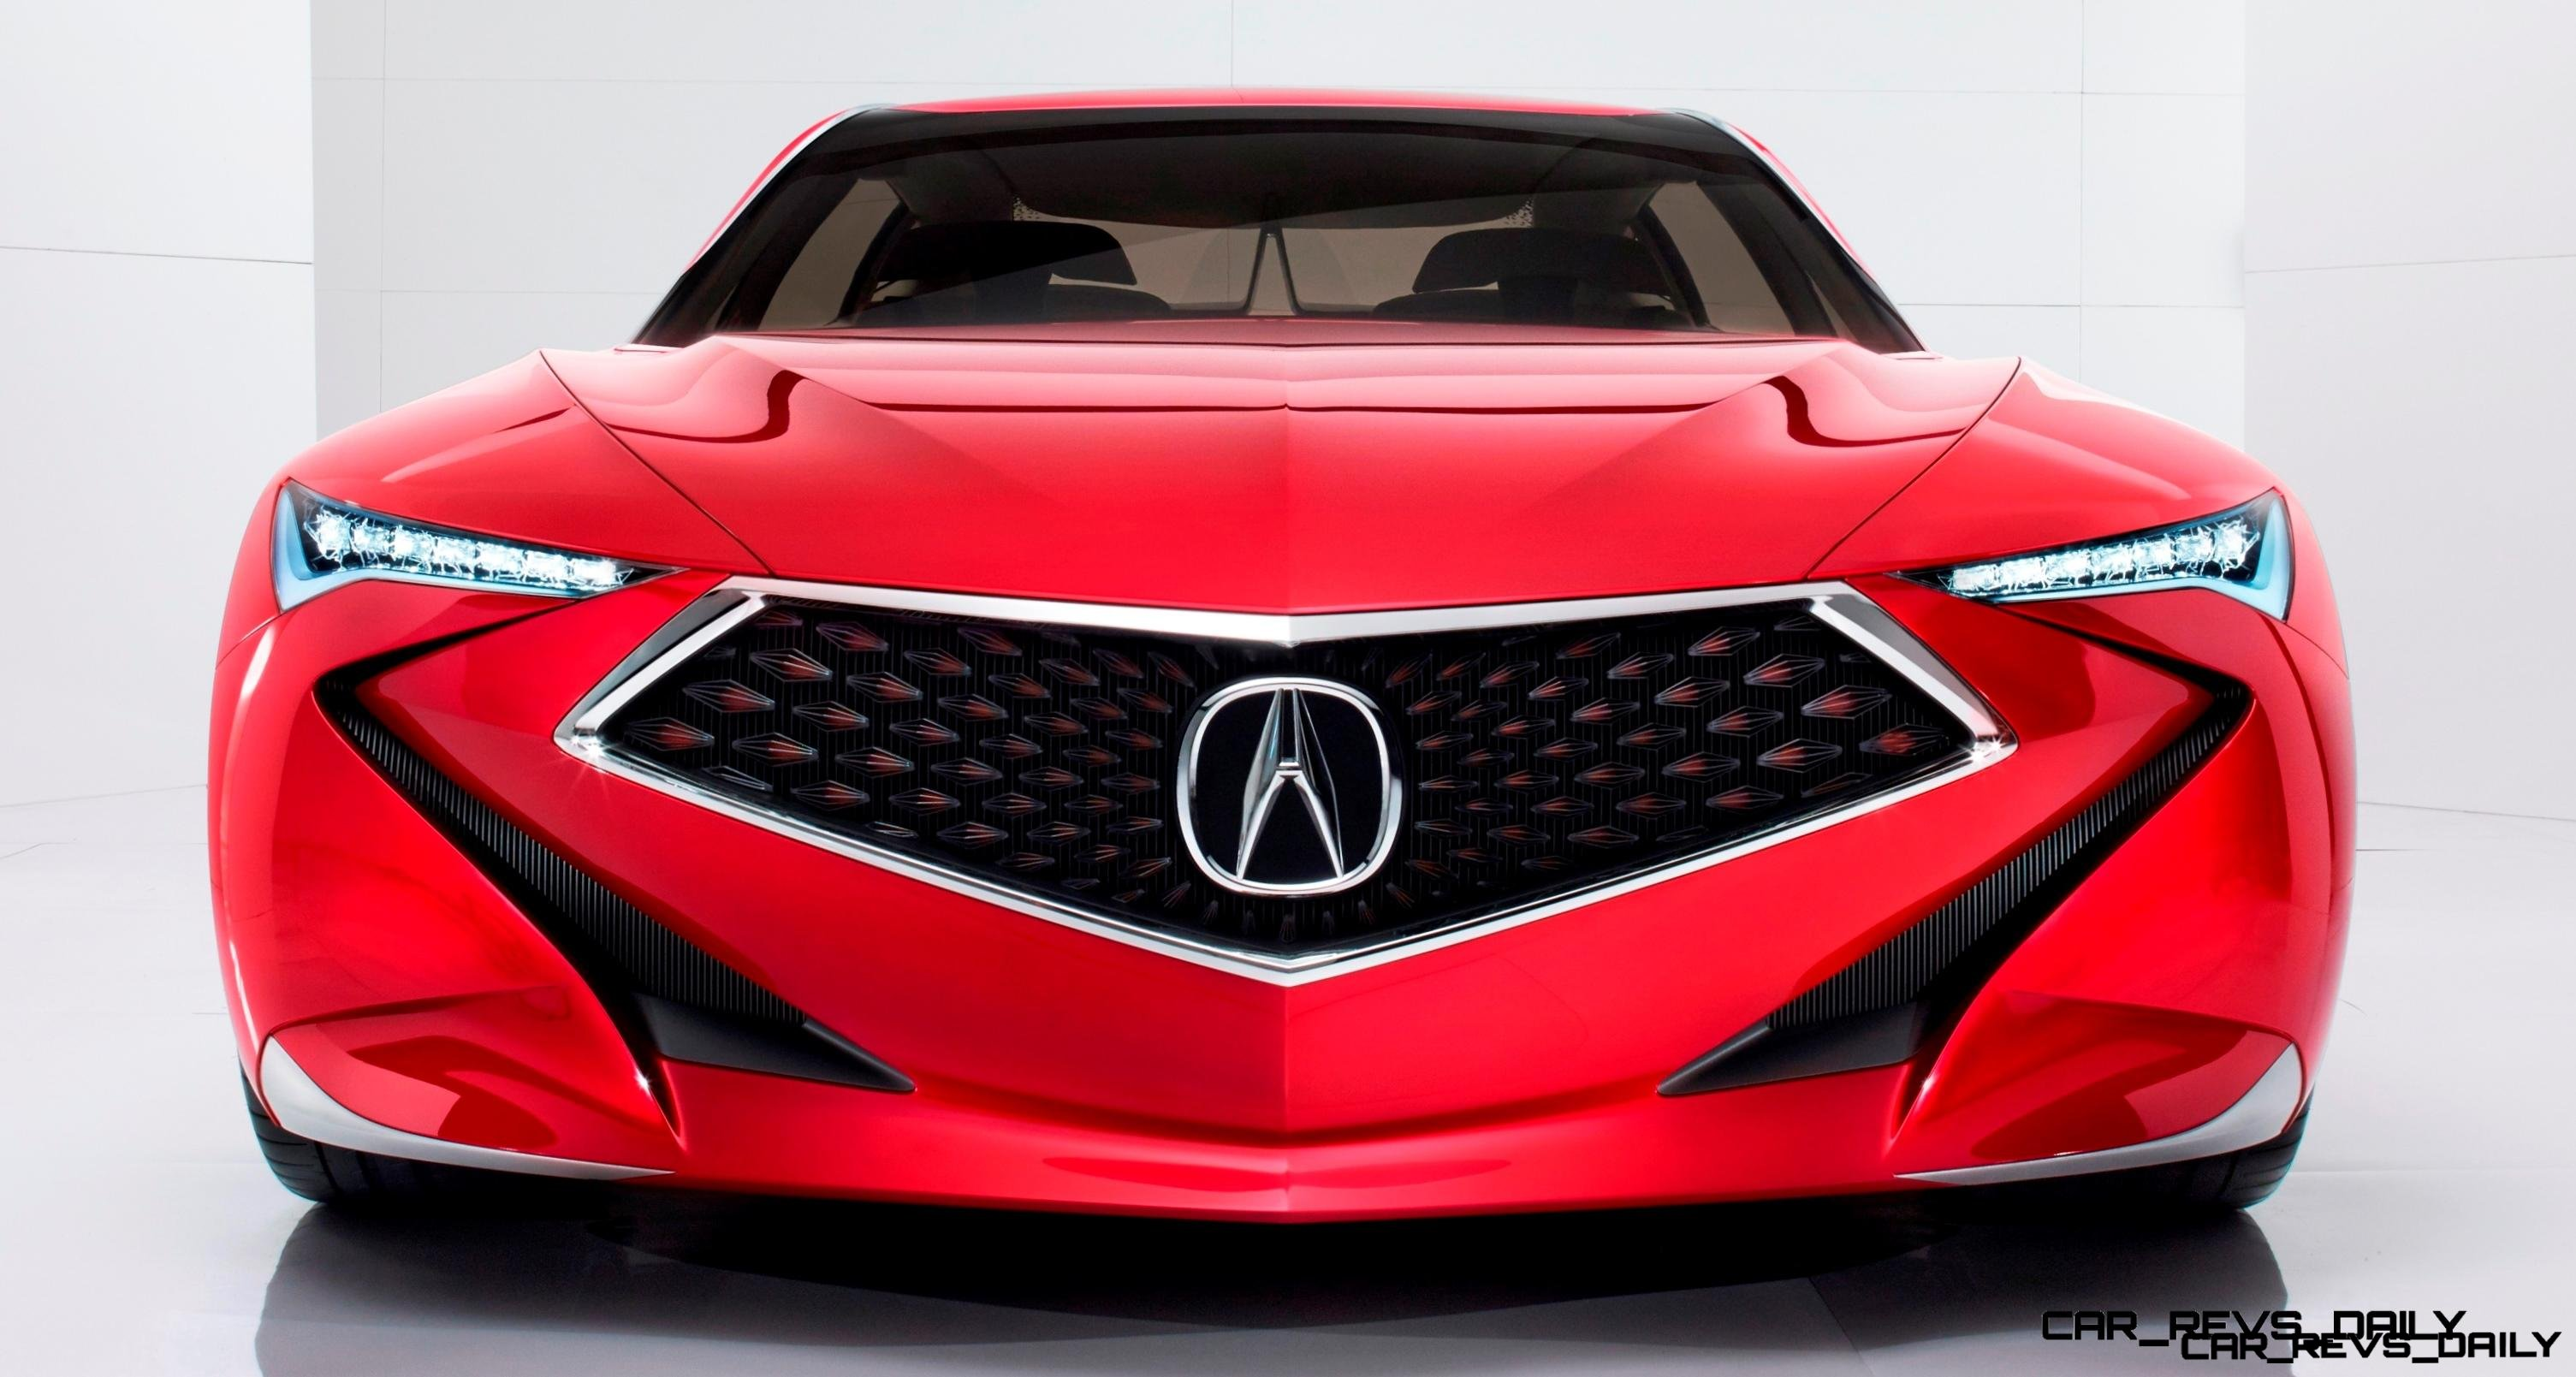 Worst of NAIAS - 2016 Acura Precision Concept 3